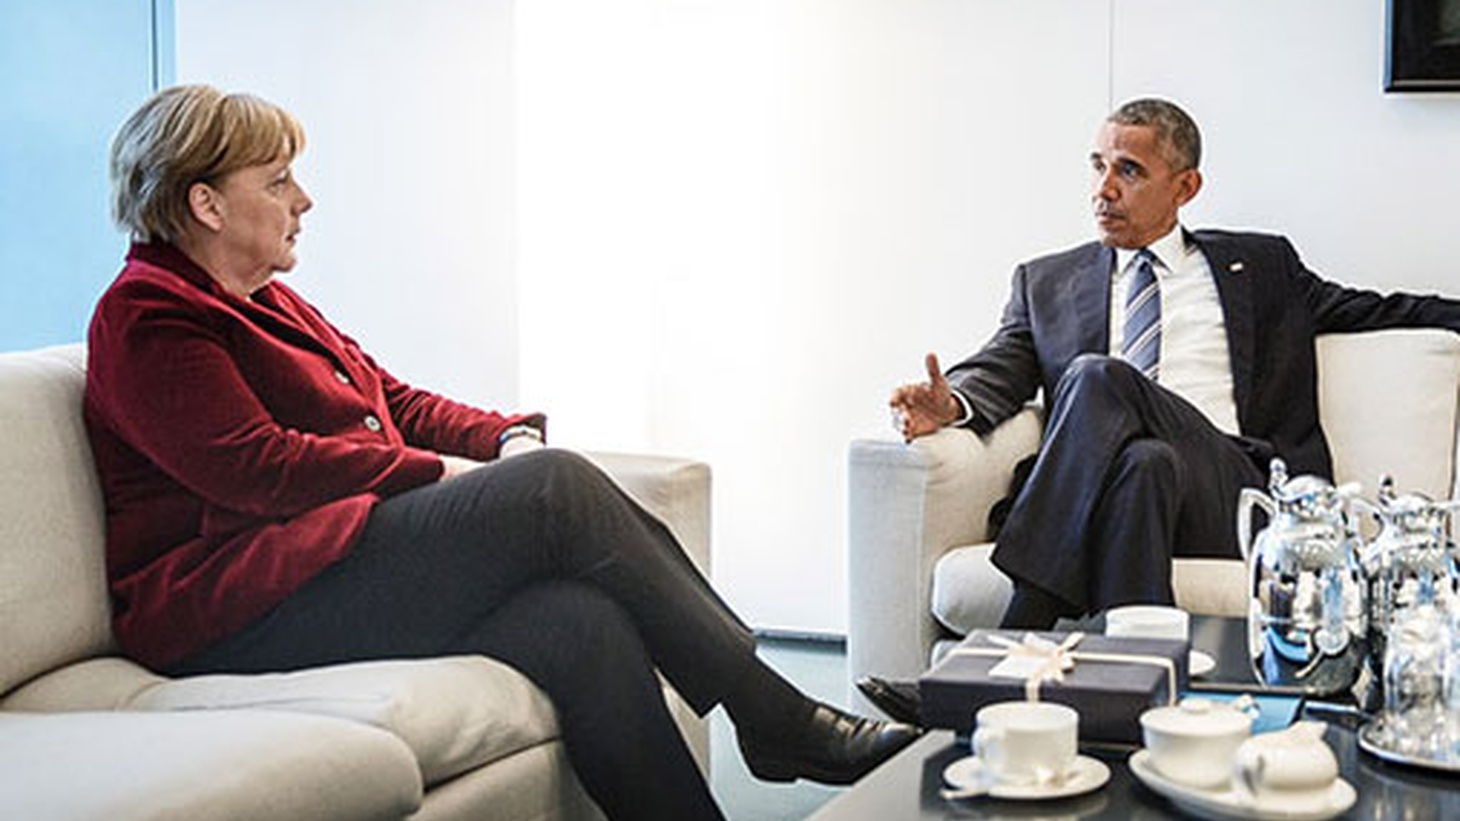 President Obama's trip to Europe this week is not the anticipated victory lap but a mission to explain Donald Trump's unexpected election and reaffirm the values underlying the Atlantic Alliance. We hear about his hand-off of leadership to Germany's Angela Merkel.